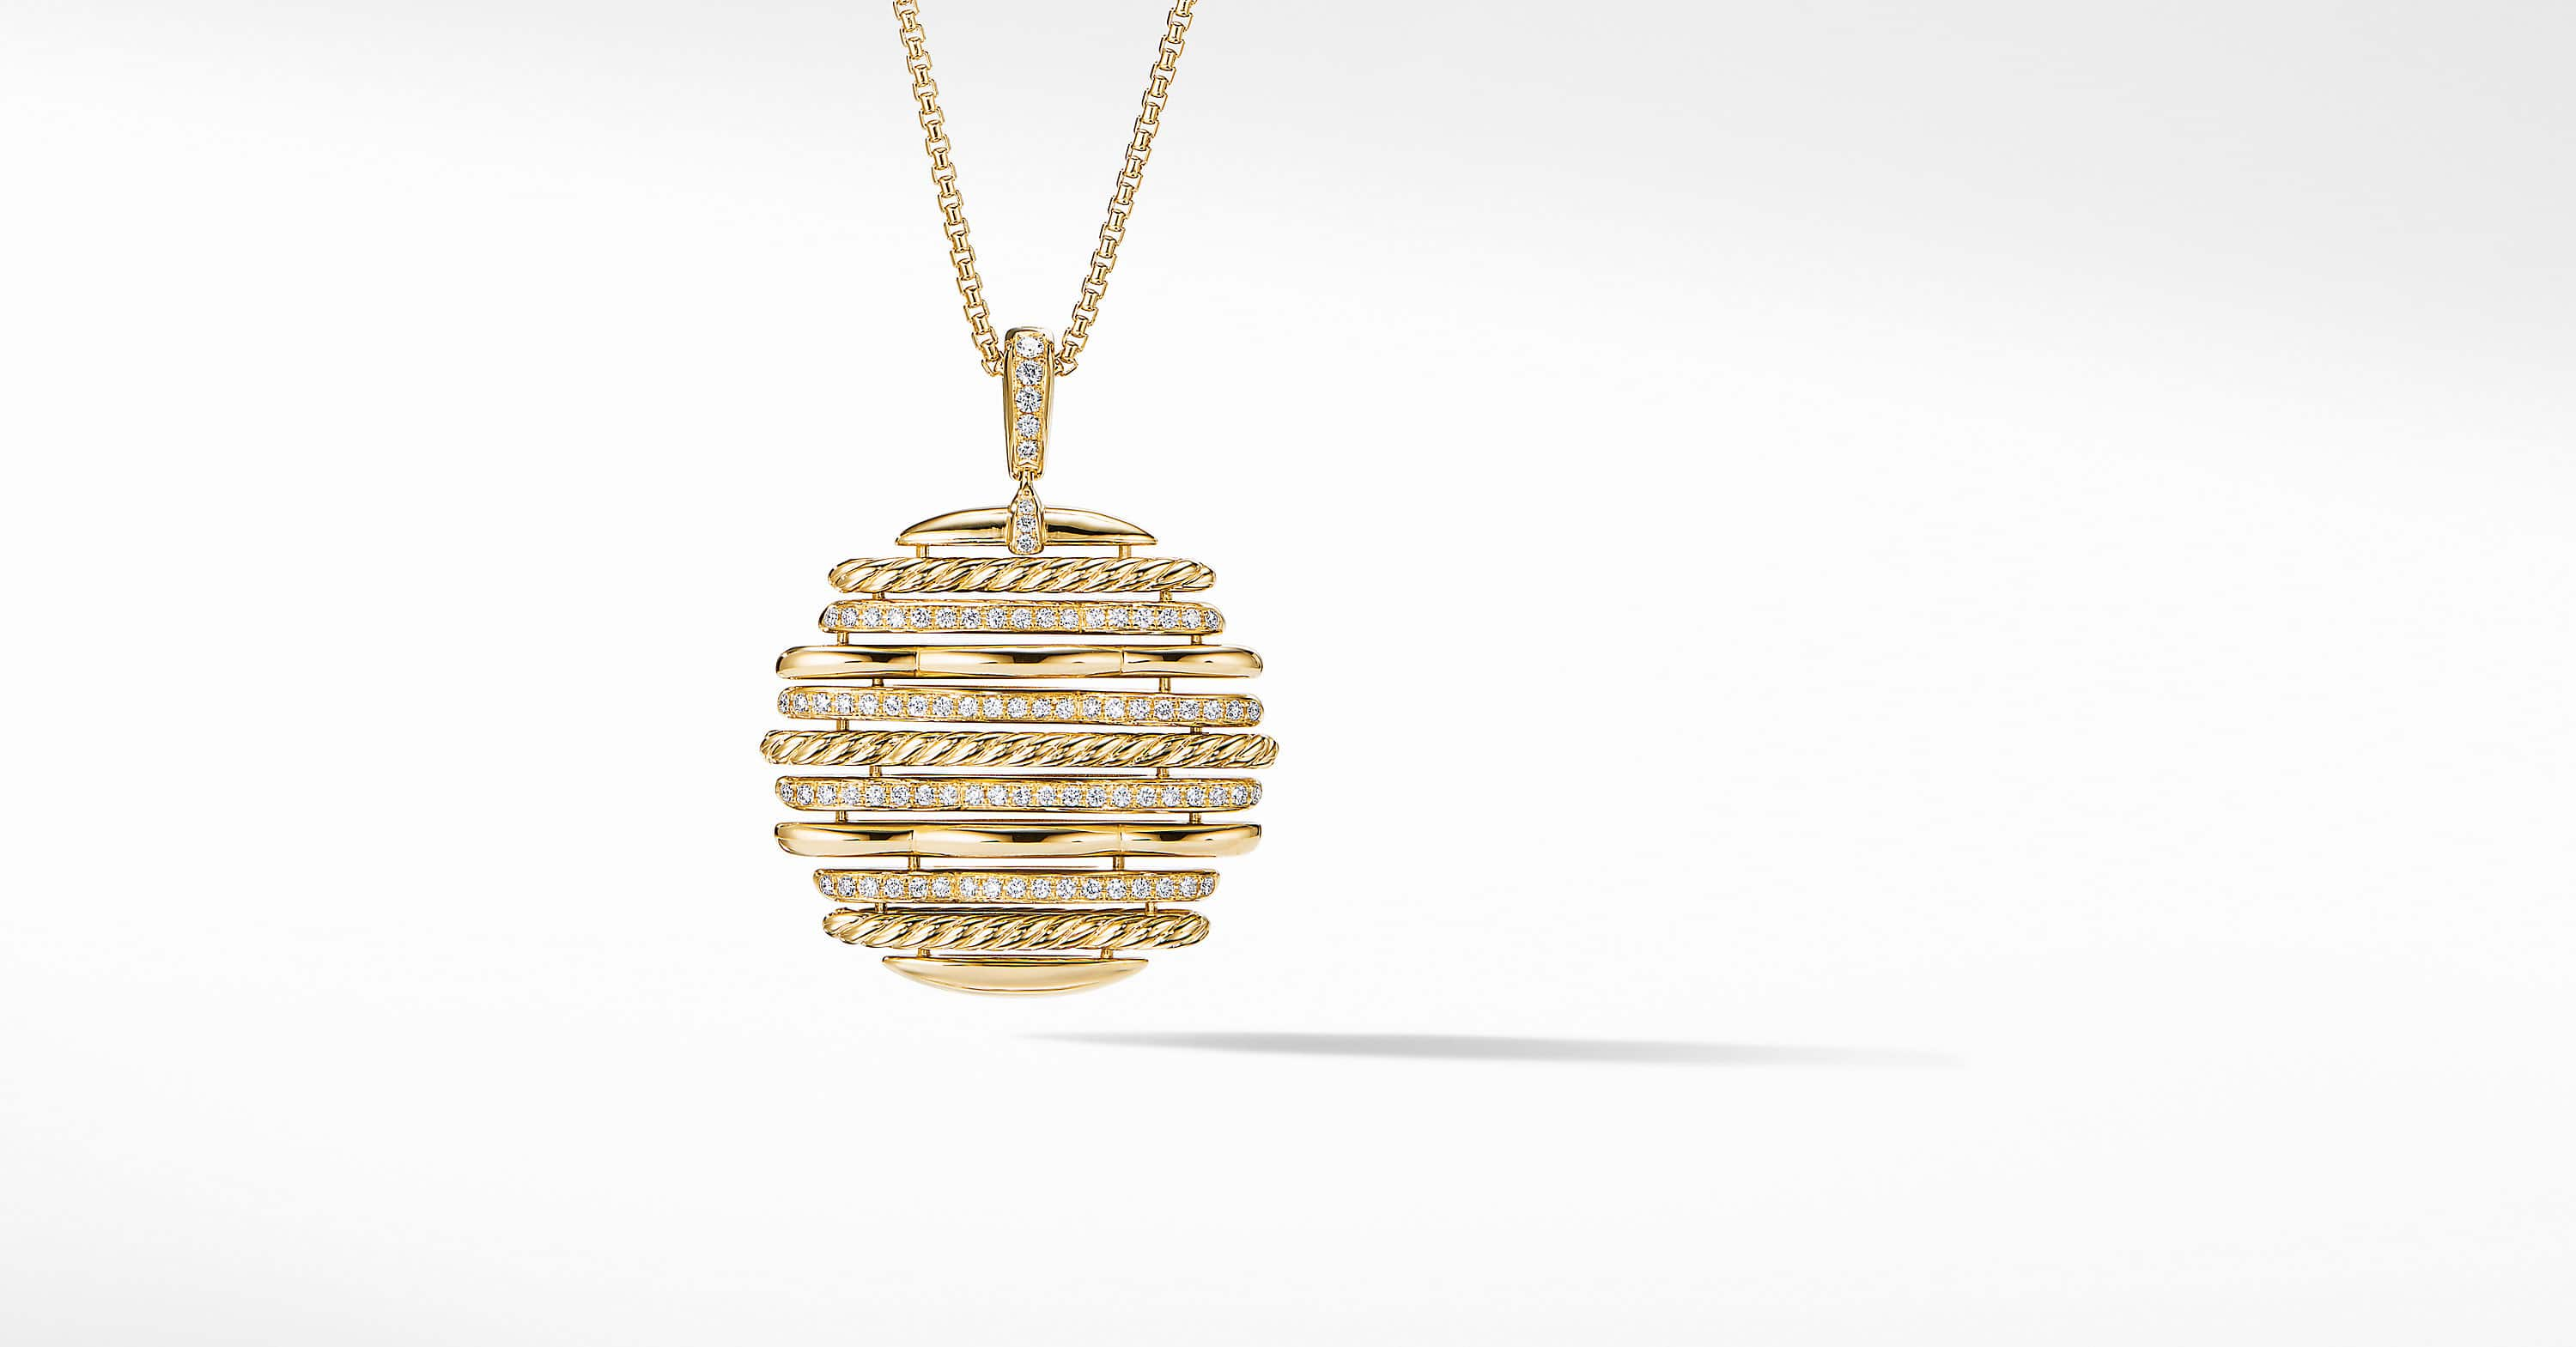 Tides Pendant Necklace in 18K Yellow Gold with Diamonds